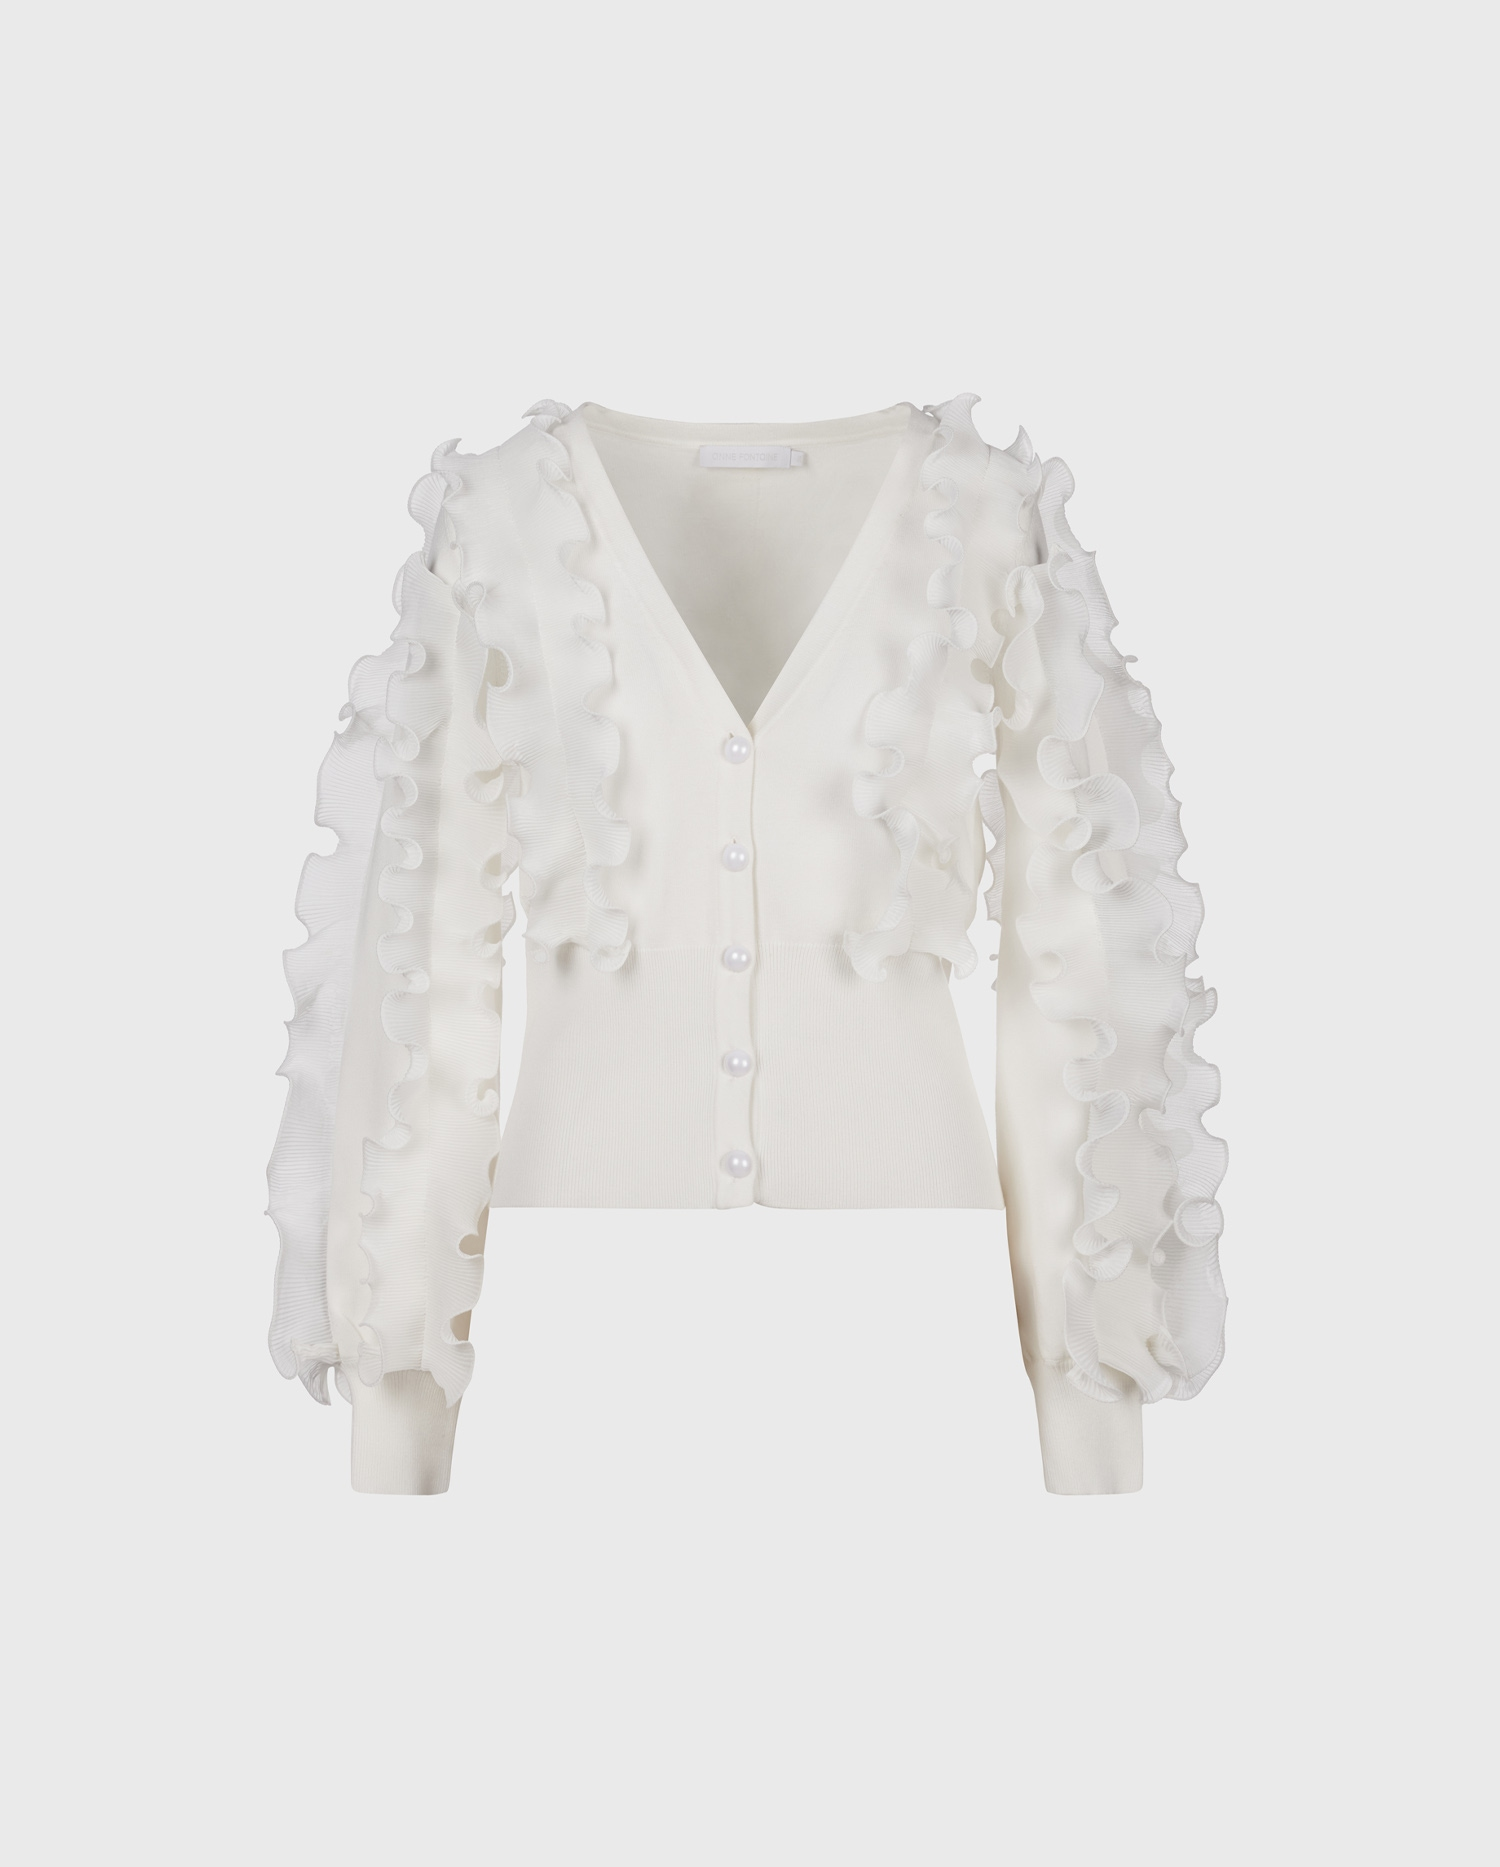 Ciline is the perfectly Parisian cardigan sweater featuring statement ruffles throughout.